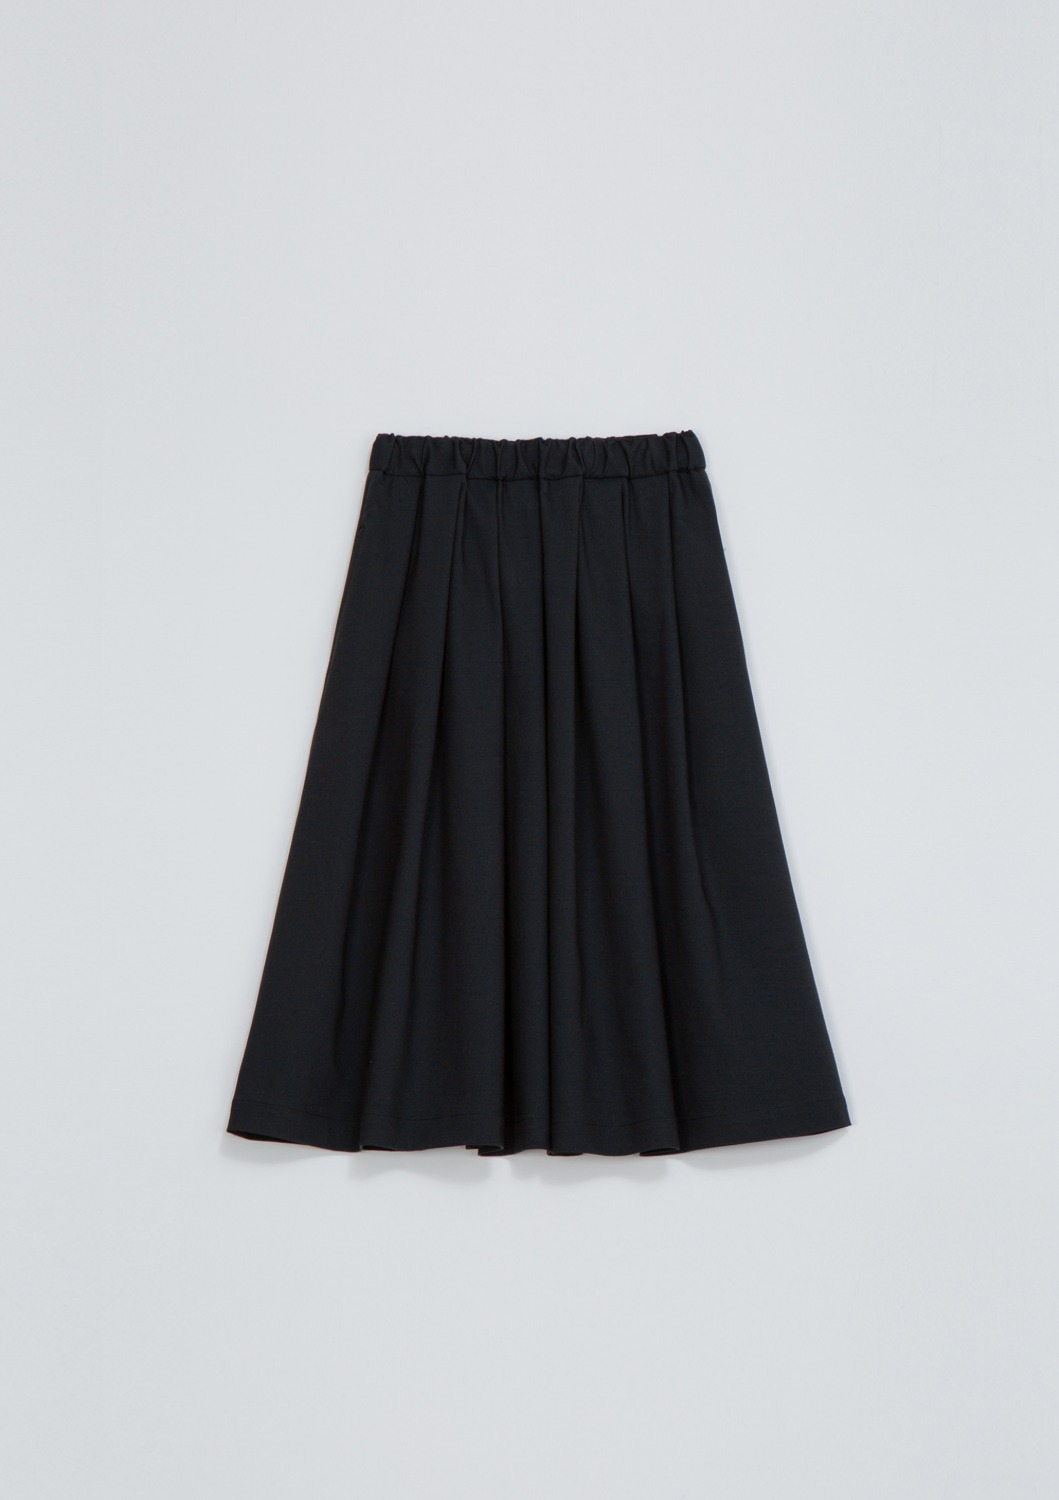 Layla Skirt - Navy Cotton Blended